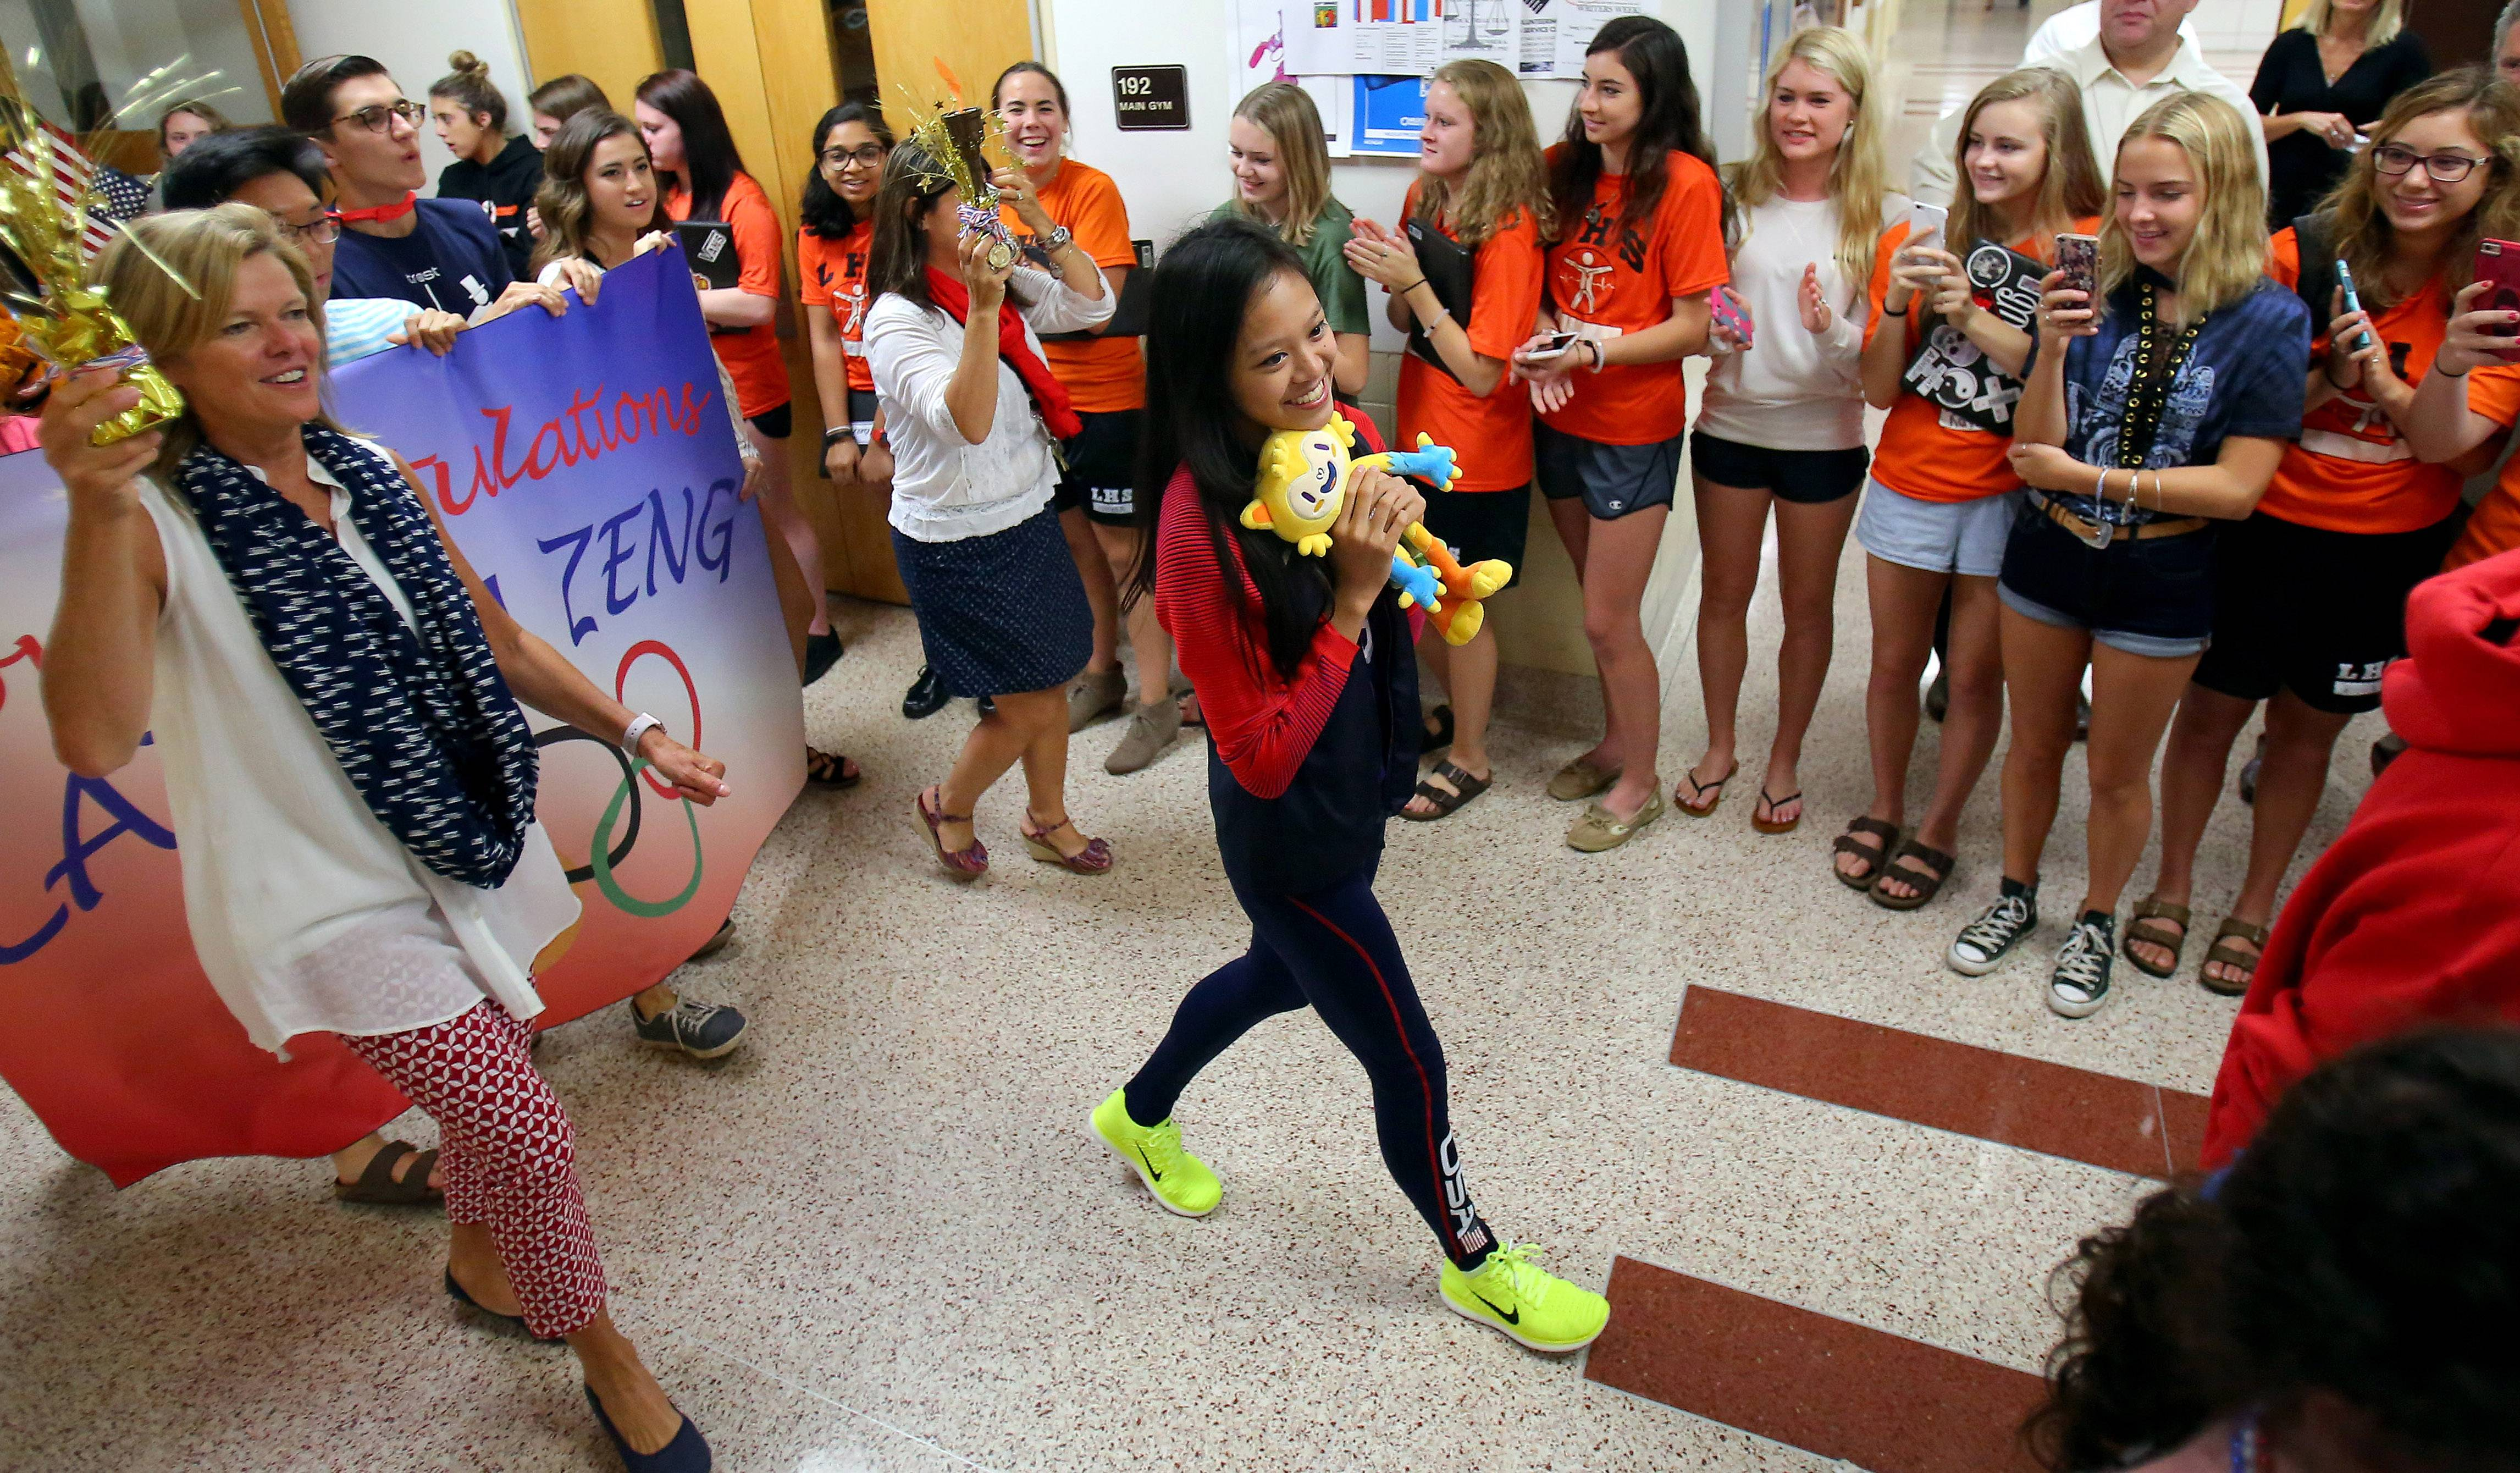 Libertyville High School student Laura Zeng got a hero's welcome after she competed in the 2016 Summer Olympics.